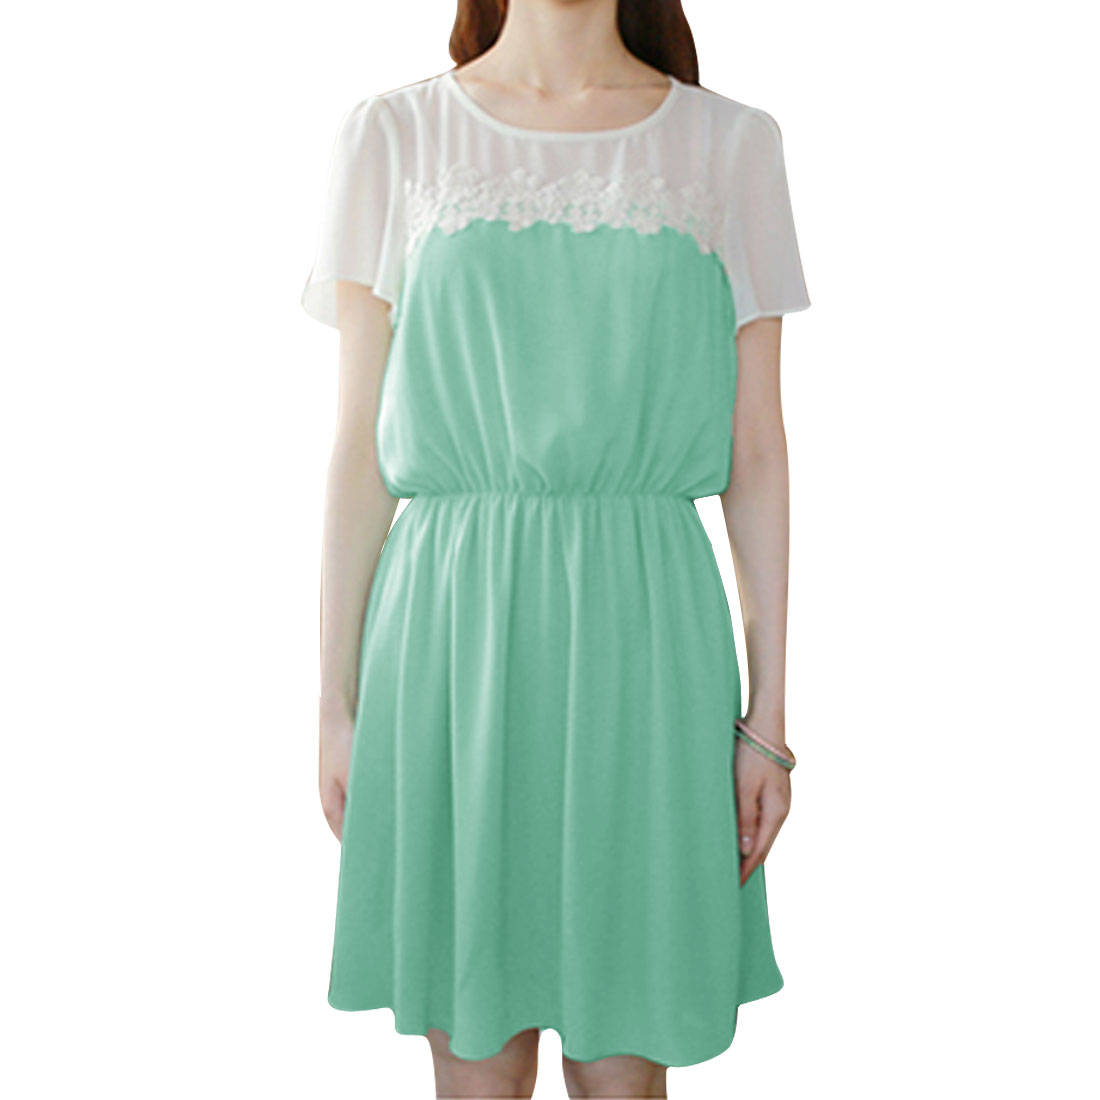 Women Short Sleeve Round Neck Elastic Waist Chiffon Casual Dress Mint XS